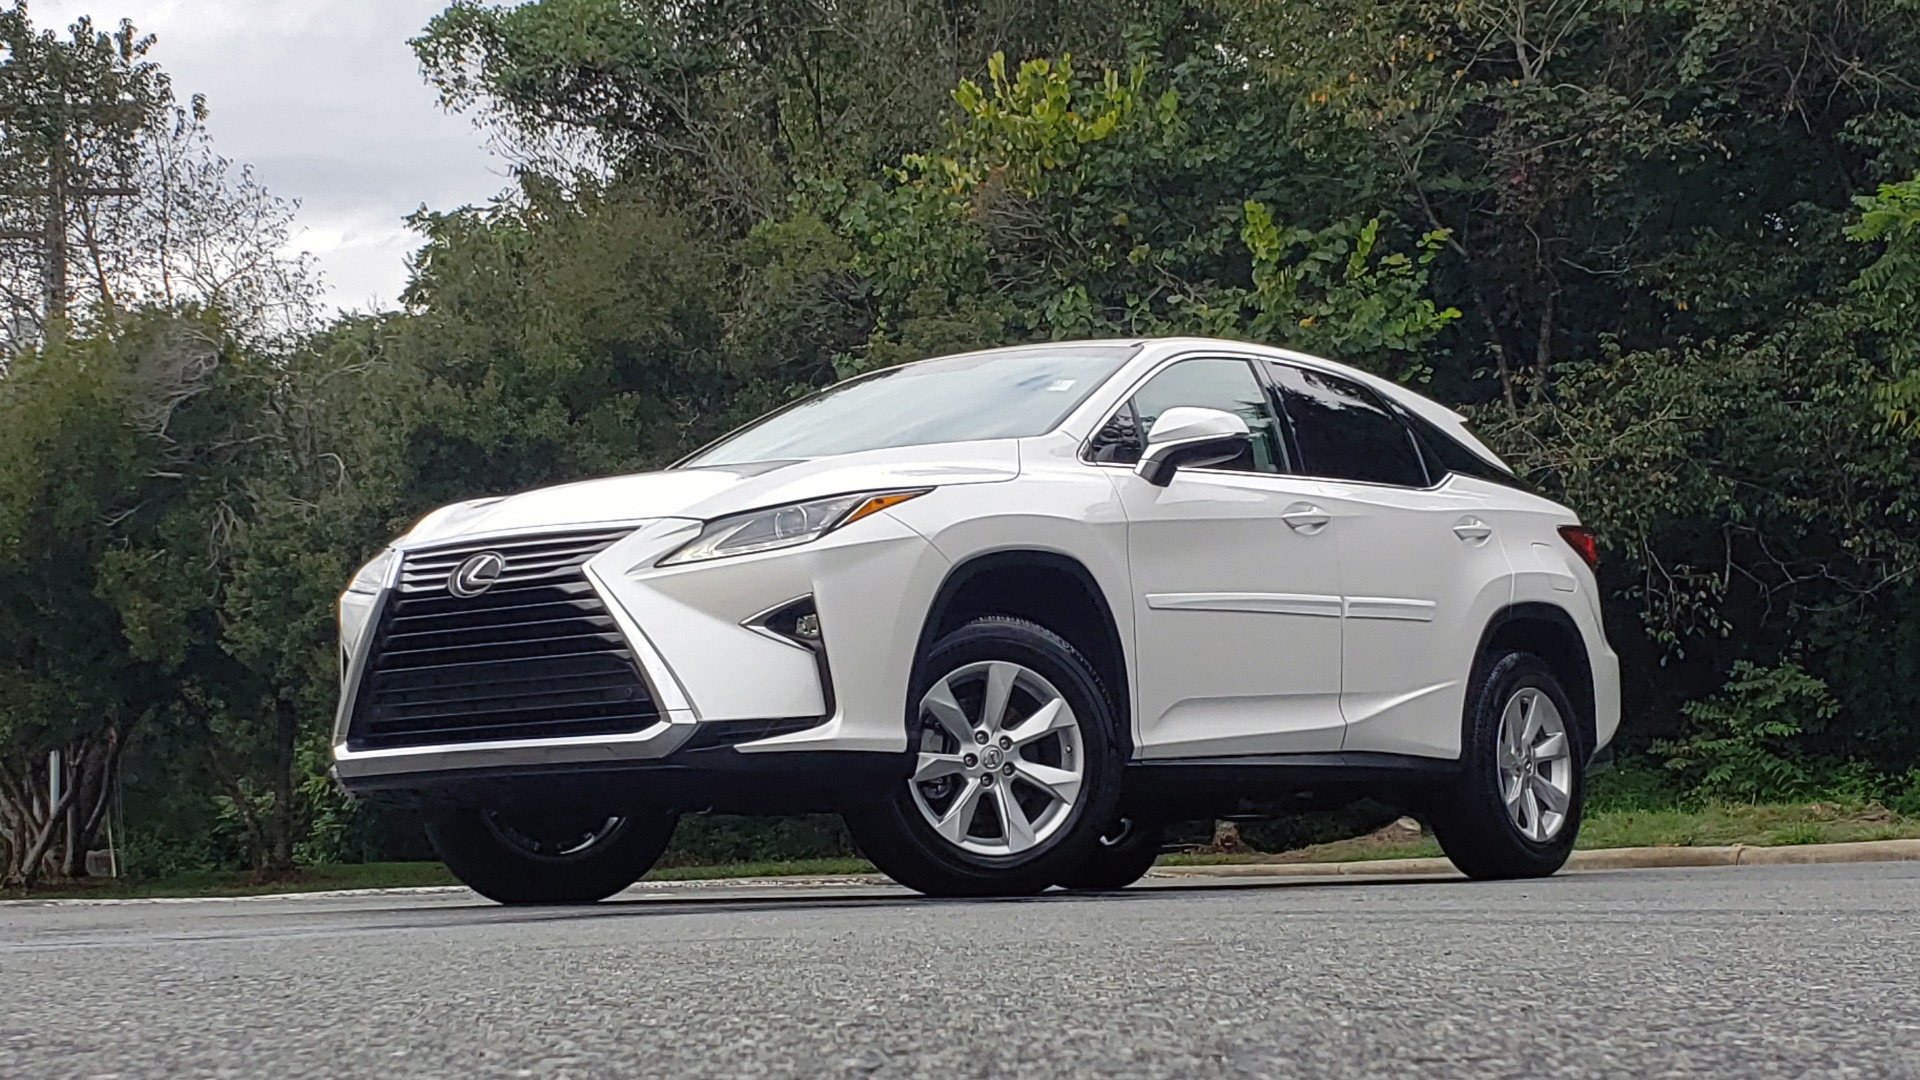 Used 2016 Lexus RX 350 FWD / 4-DR / 3.5L V6 / 8-SPD AUTO / LEATHER / REARVIEW for sale $29,795 at Formula Imports in Charlotte NC 28227 2